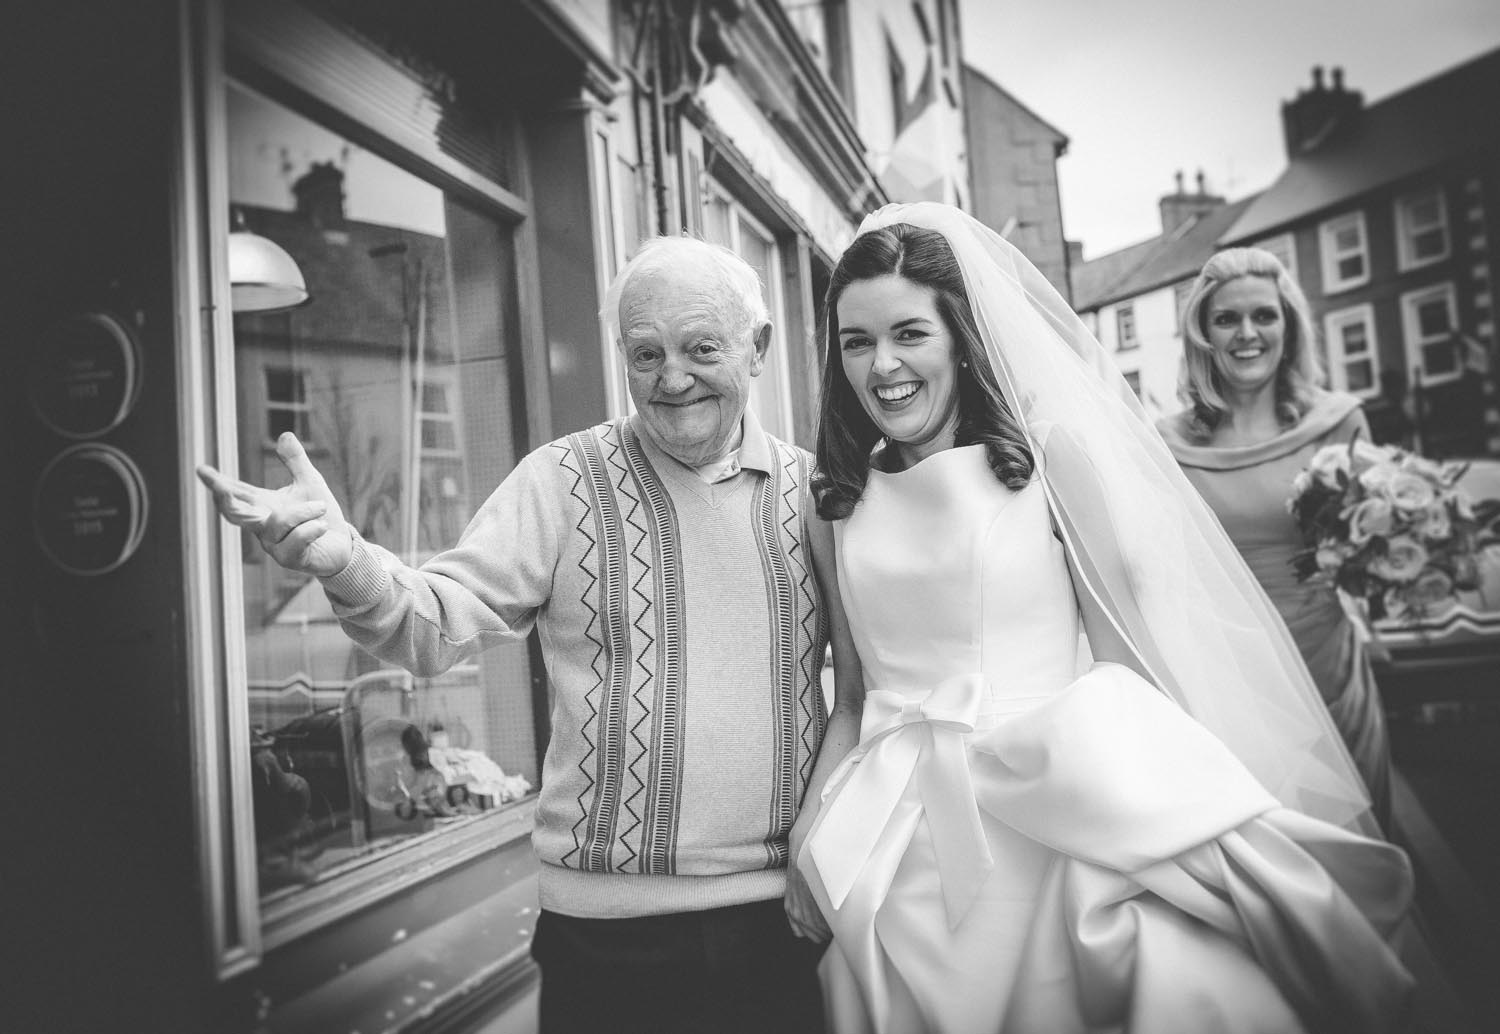 Step House wedding photographer Carlow Borris076.jpg